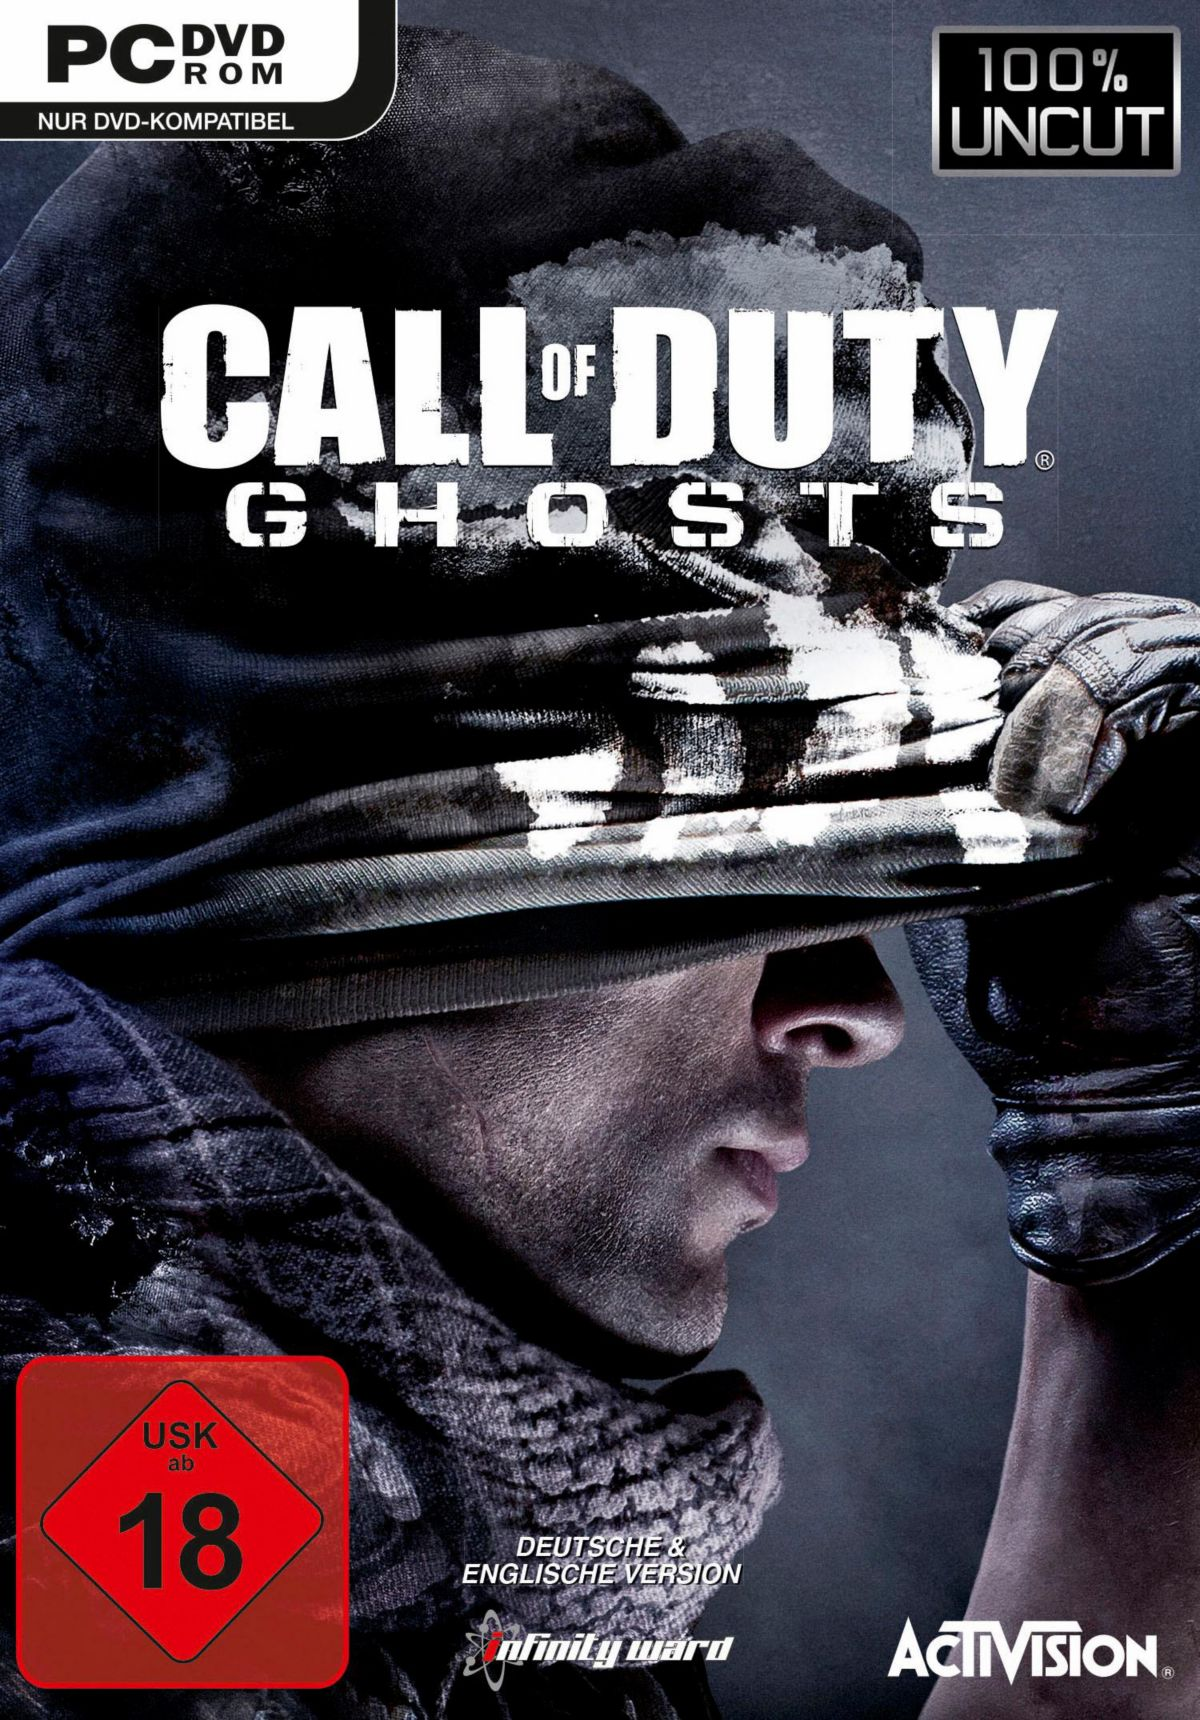 Call of Duty: Ghosts PC (DVD-ROM)